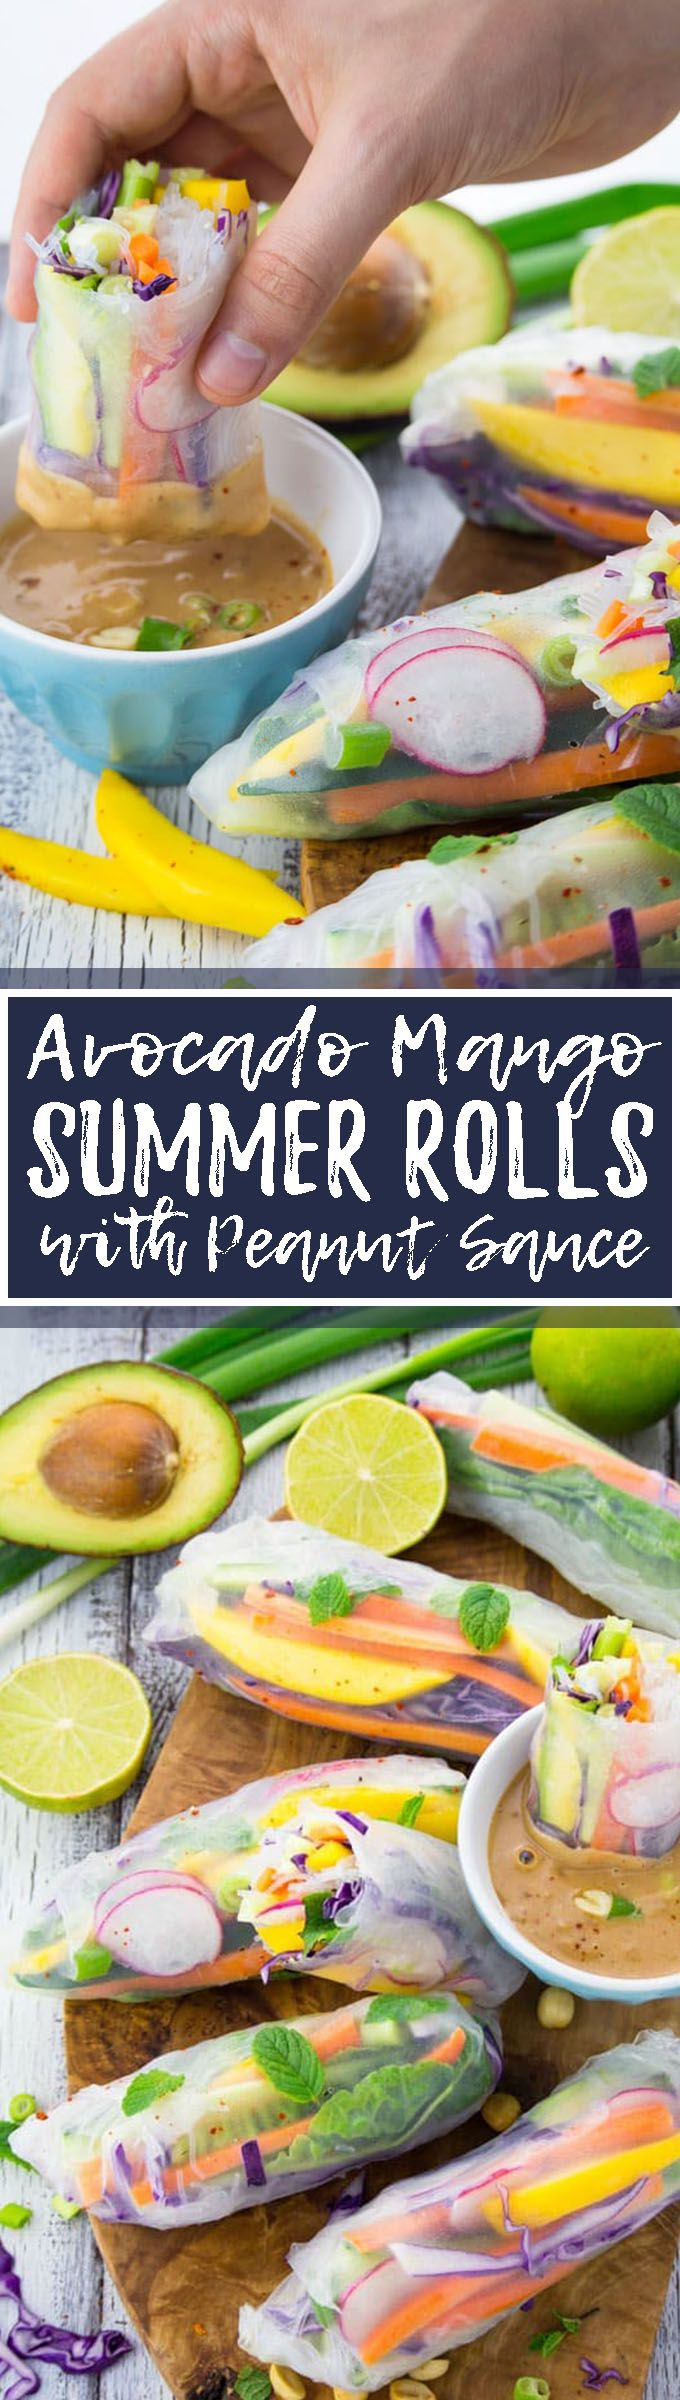 These vegan summer rolls with avocado, mango, and mint are such a delicious and healthy vegan dinner or lunch! I LOVE serving them with peanut sauce. So yummy! One of my all-time favorite vegan recipes! <3   veganheaven.org